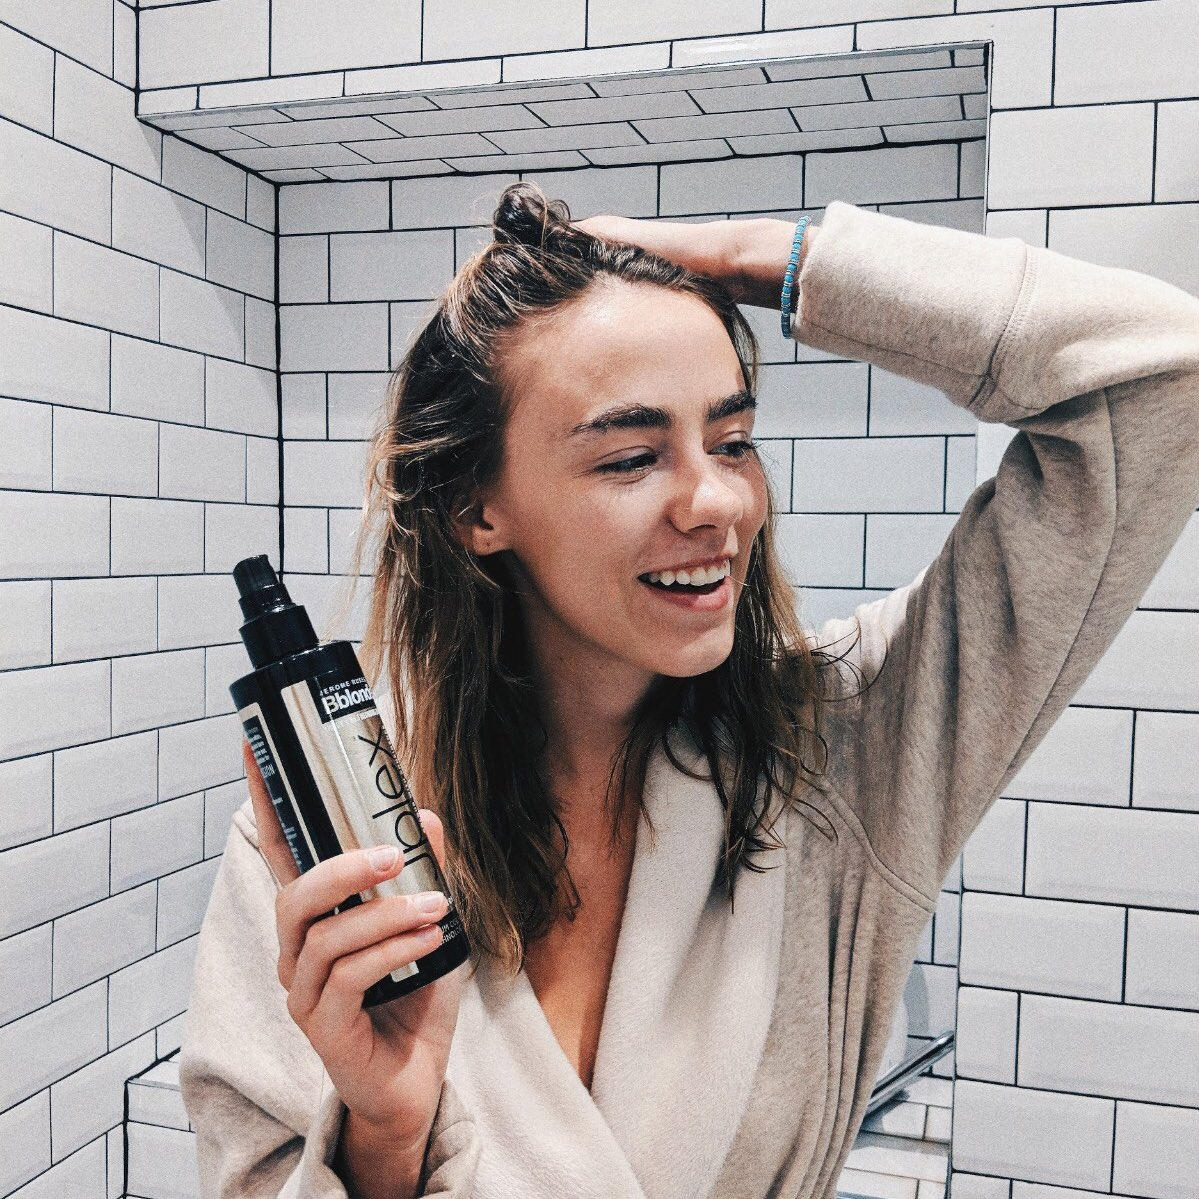 Image for Be like @AmeliaMandev and take the fear out of blonding with our Jplex system! https://t.co/tEarFNsJmv https://t.co/zCuXHGilhU